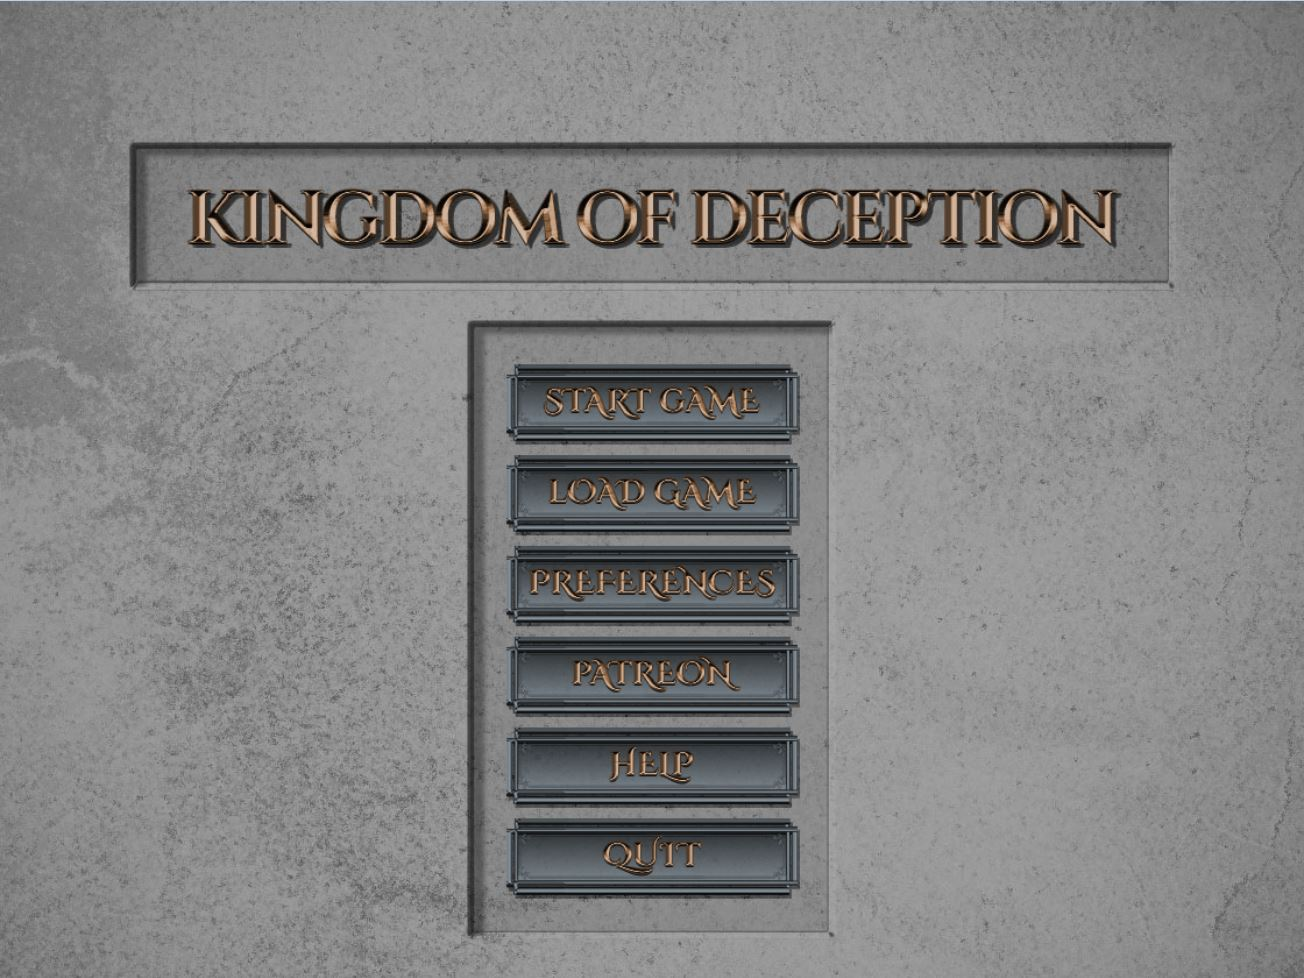 Kingdom of Deception – Version 0.8.0 + CG Images